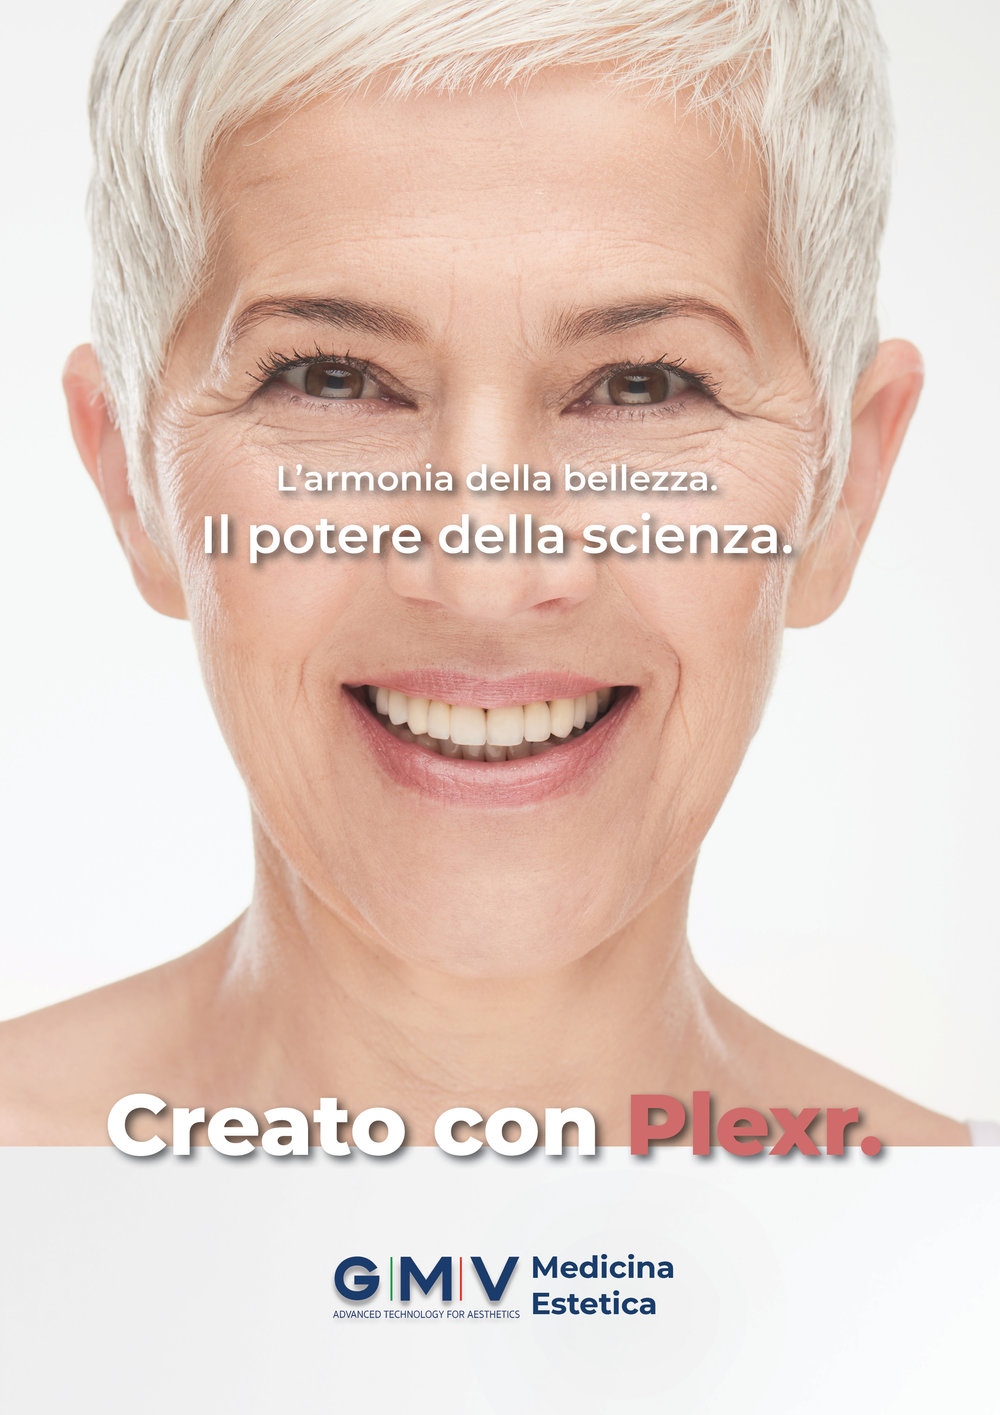 Translation: The harmony of beauty. The power of science. Created with Plexr.